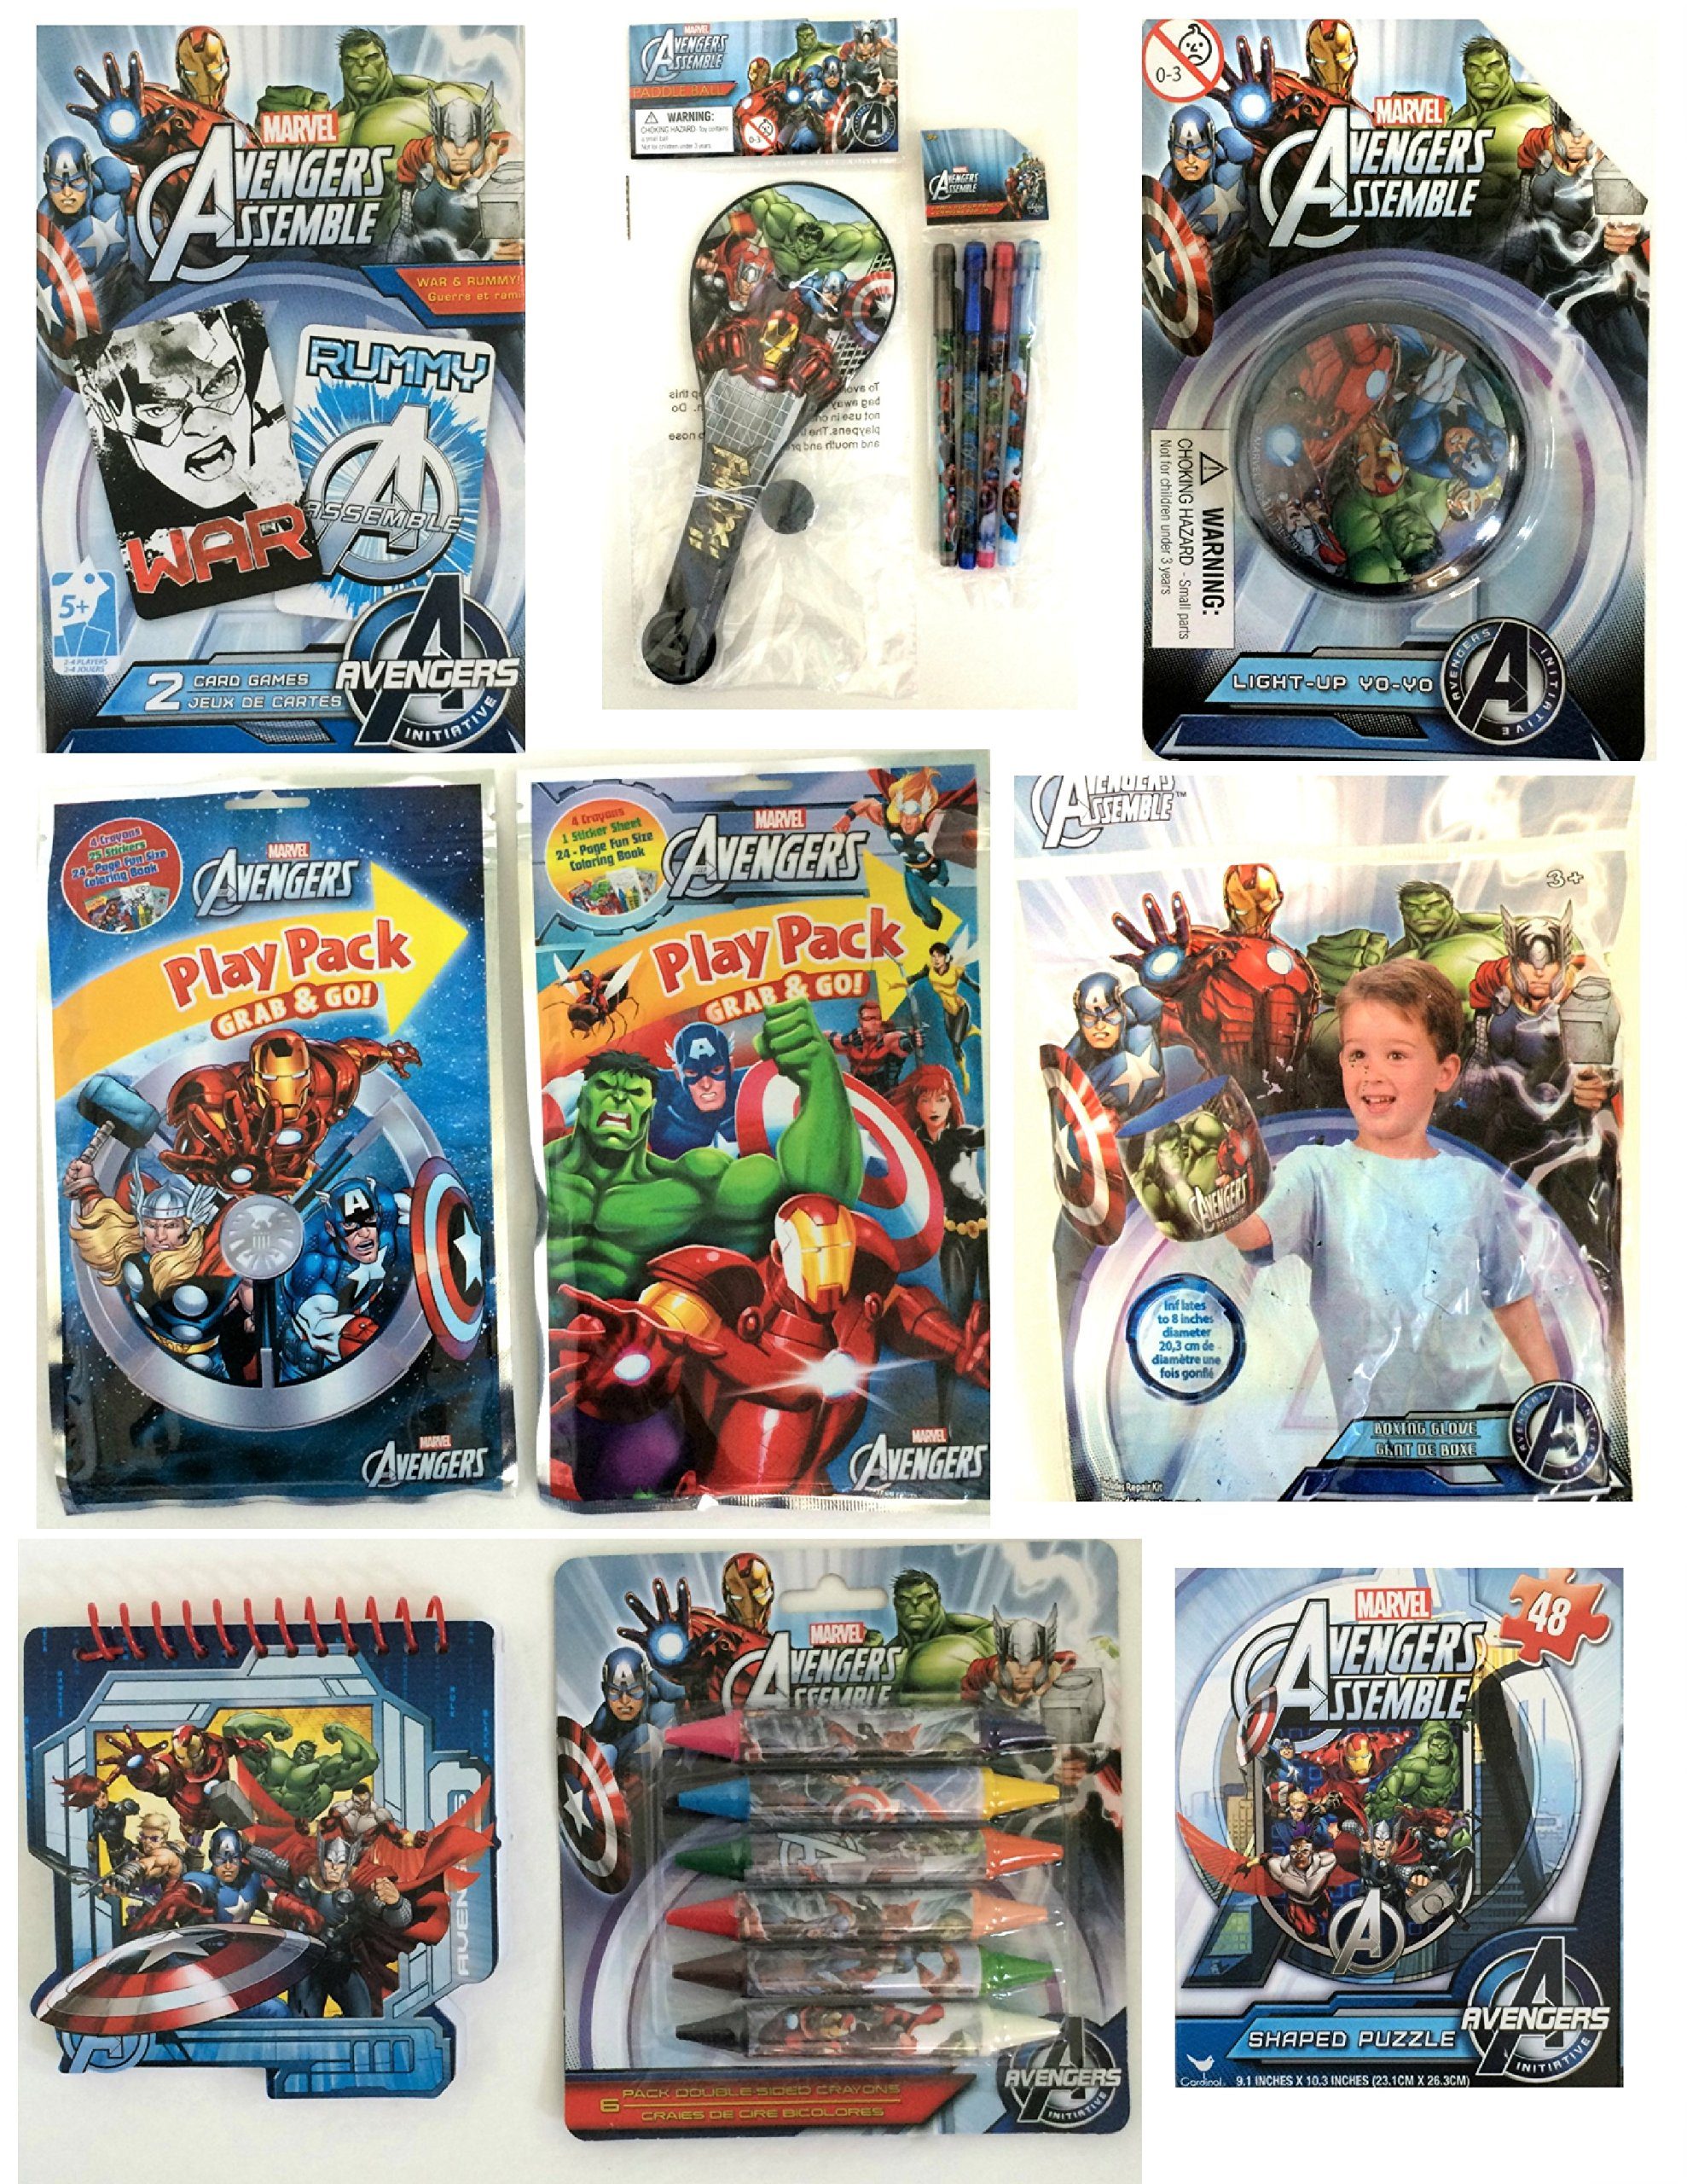 Marvel Avengers Assemble Bundle Easter Basket Fillers - Puzzle, 2 Play Packs, Two Card Games, Crayons,Yo-Yo, Markers, Memo Pad,Inflatable Boxing Glove, Pencils